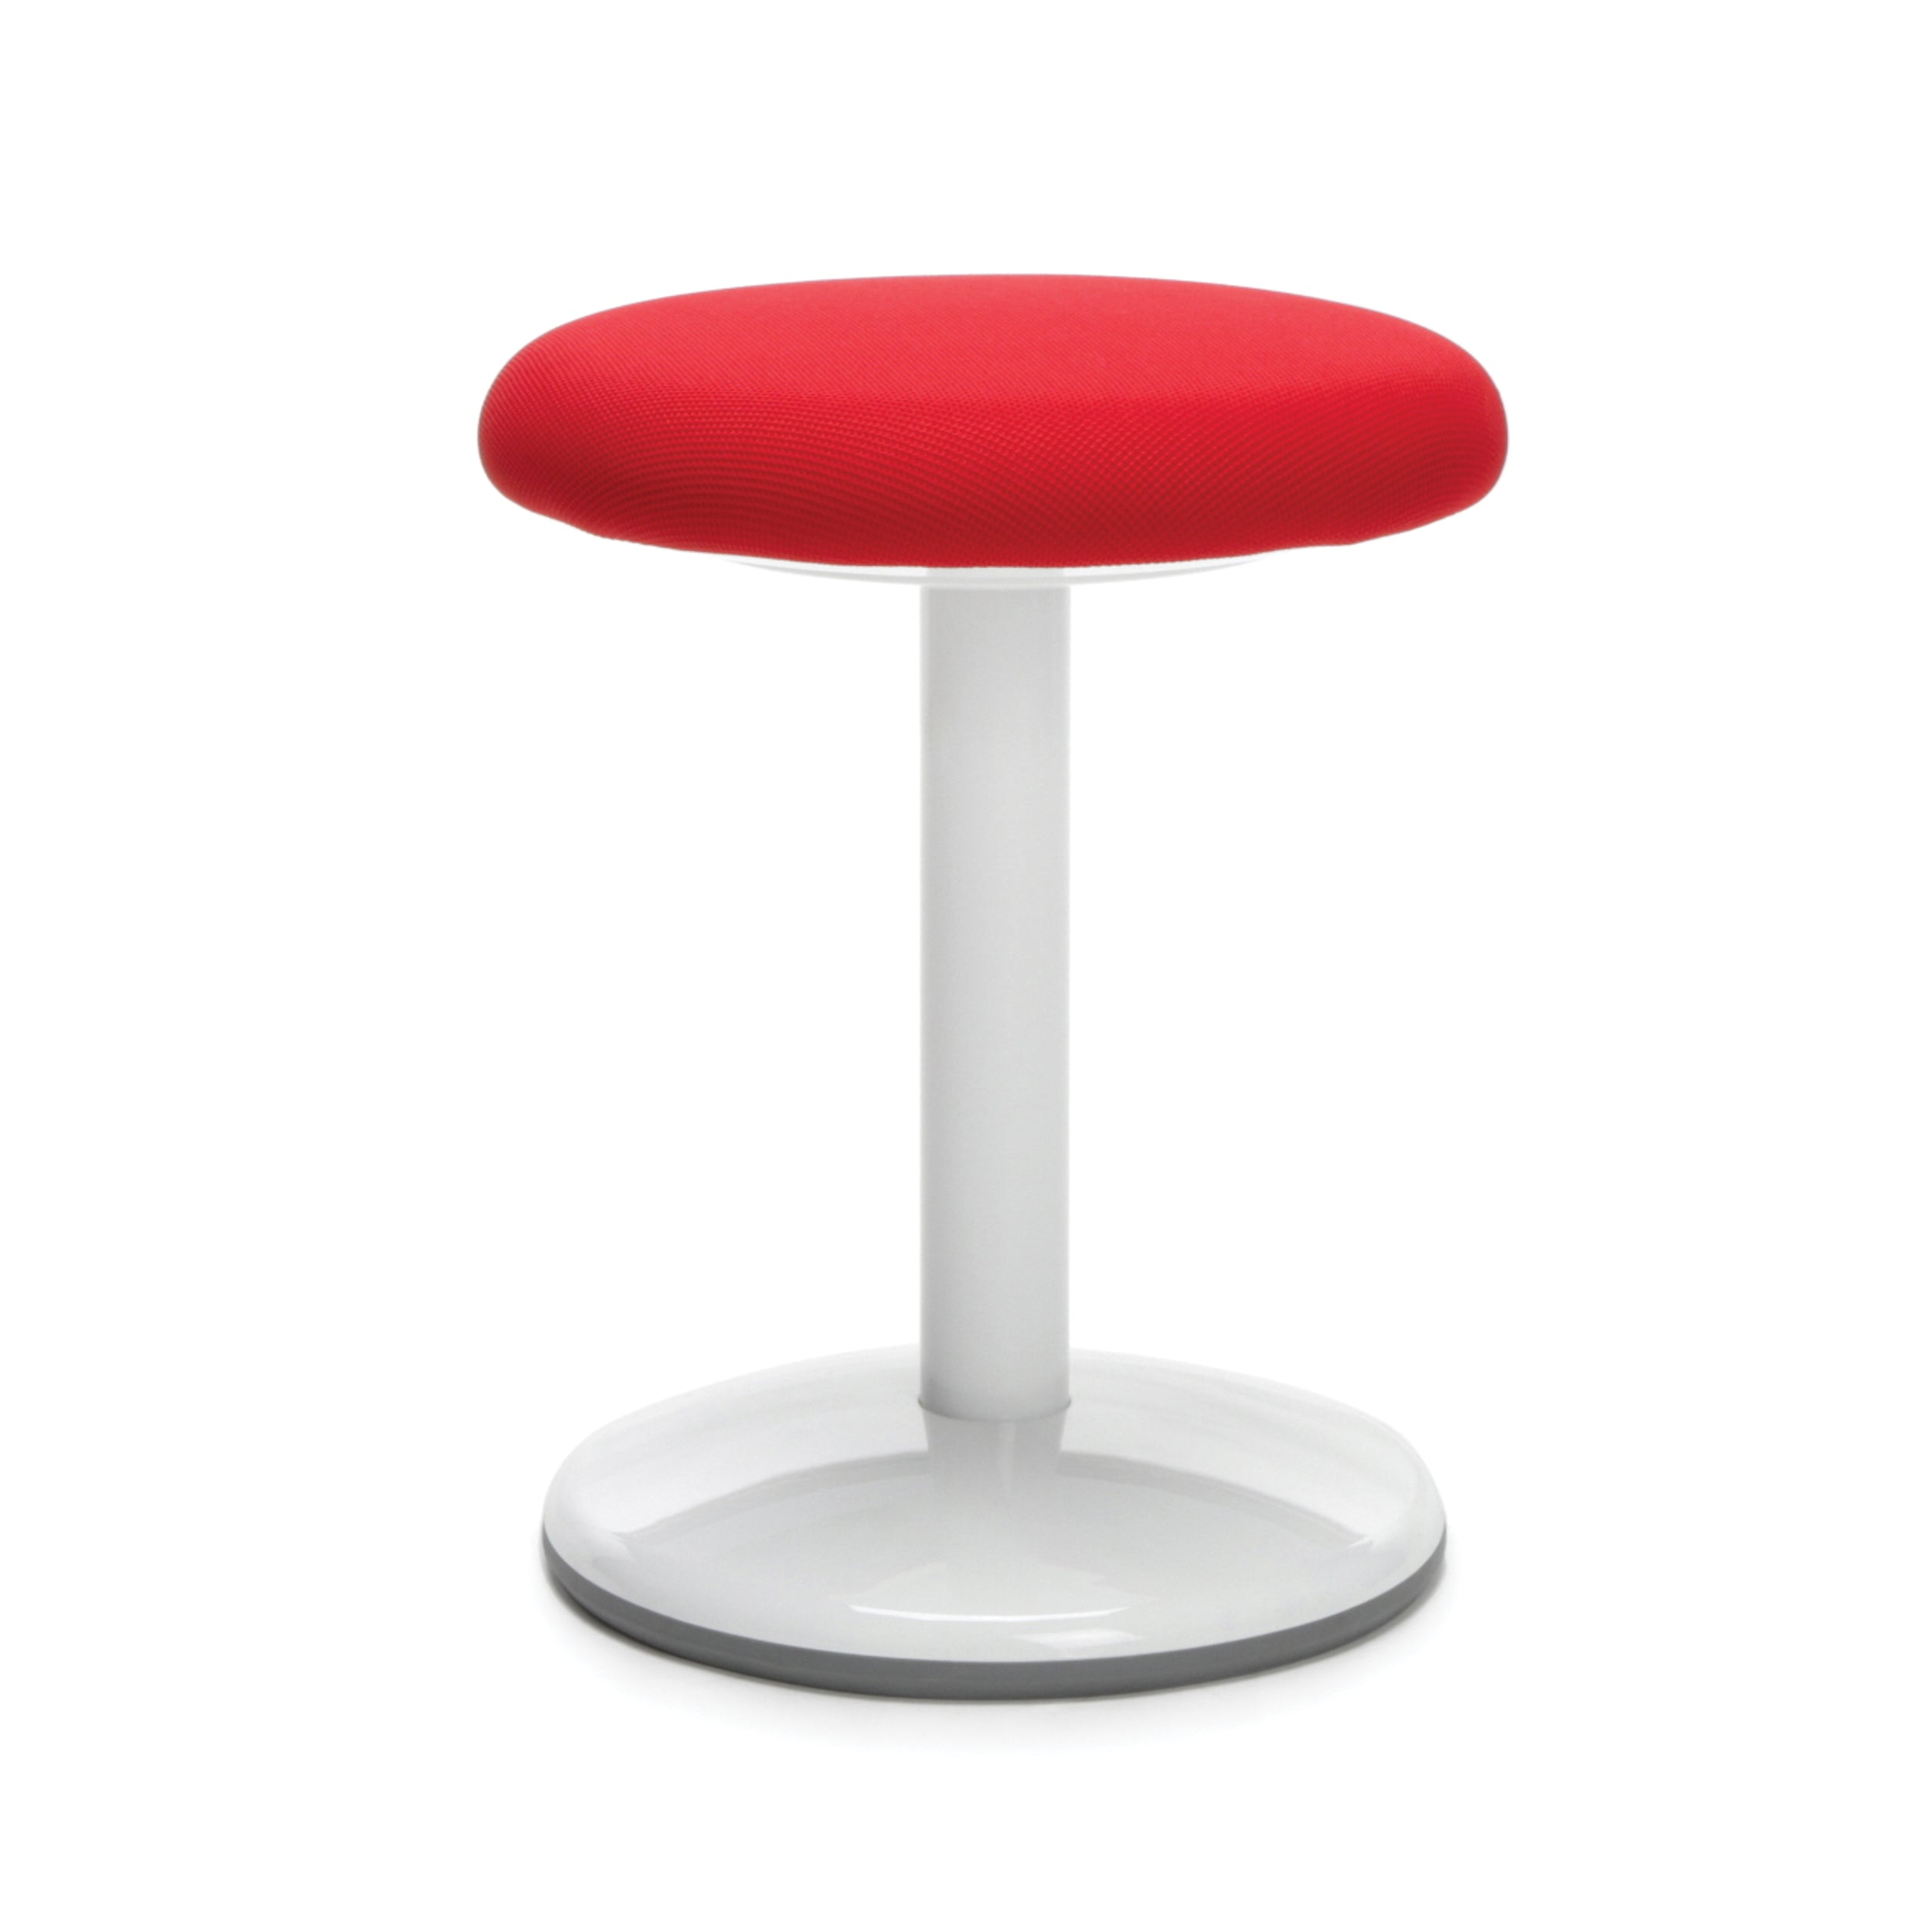 Ofminc Model 2818-STA Orbit Fabric 18 Inch Static Stool